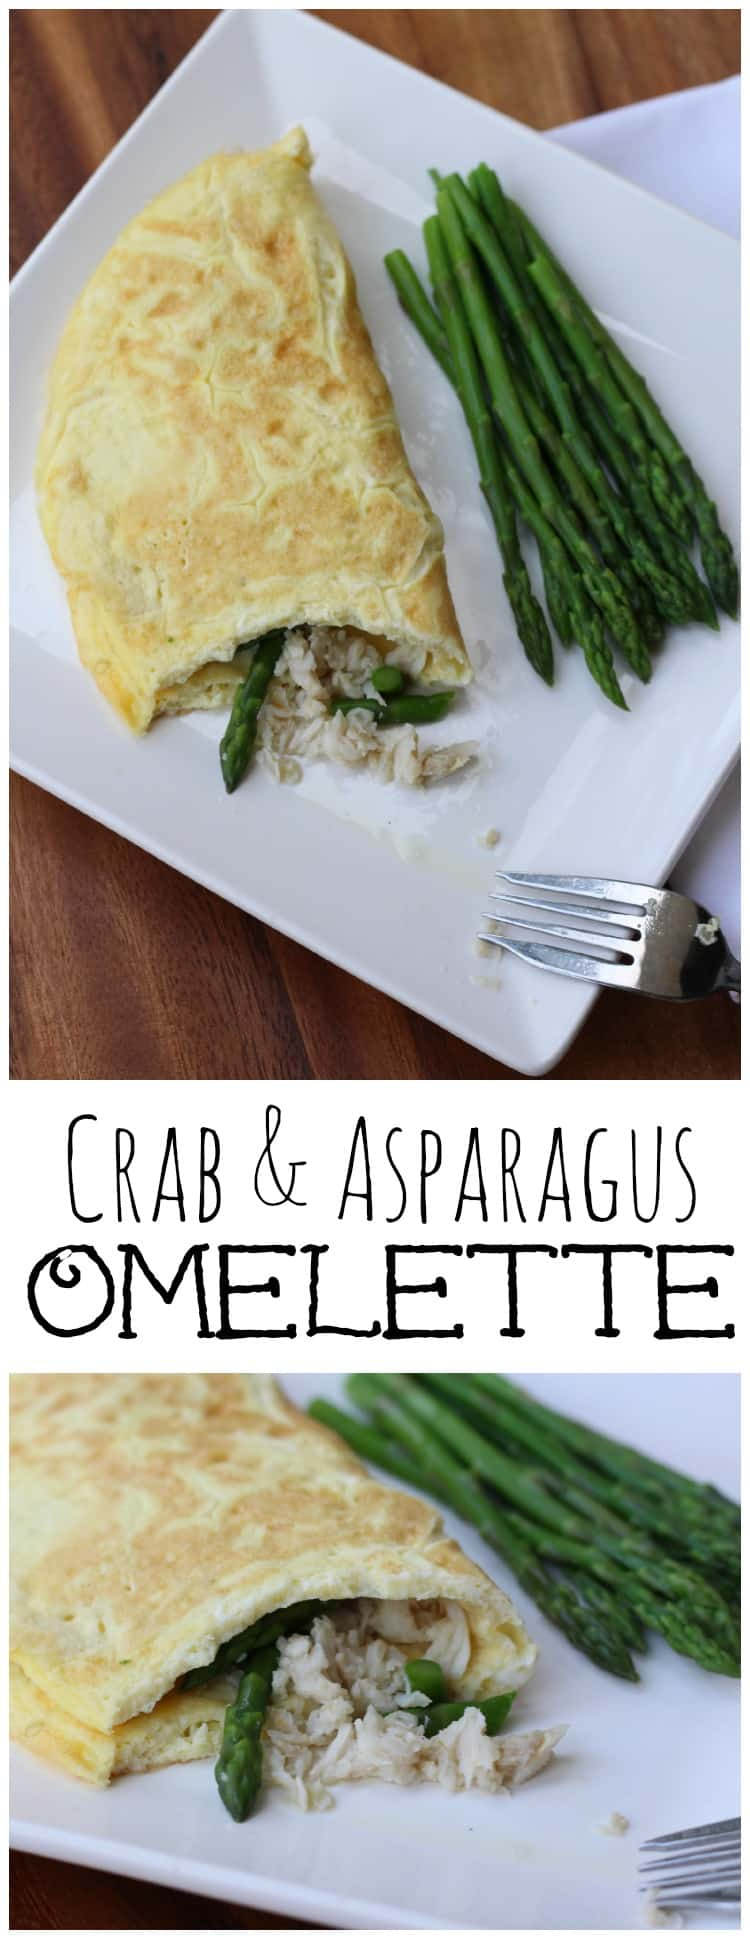 This fluffily crab and asparagus omelette is delicious! The original version is from Luke's Restaurant in New Orleans.